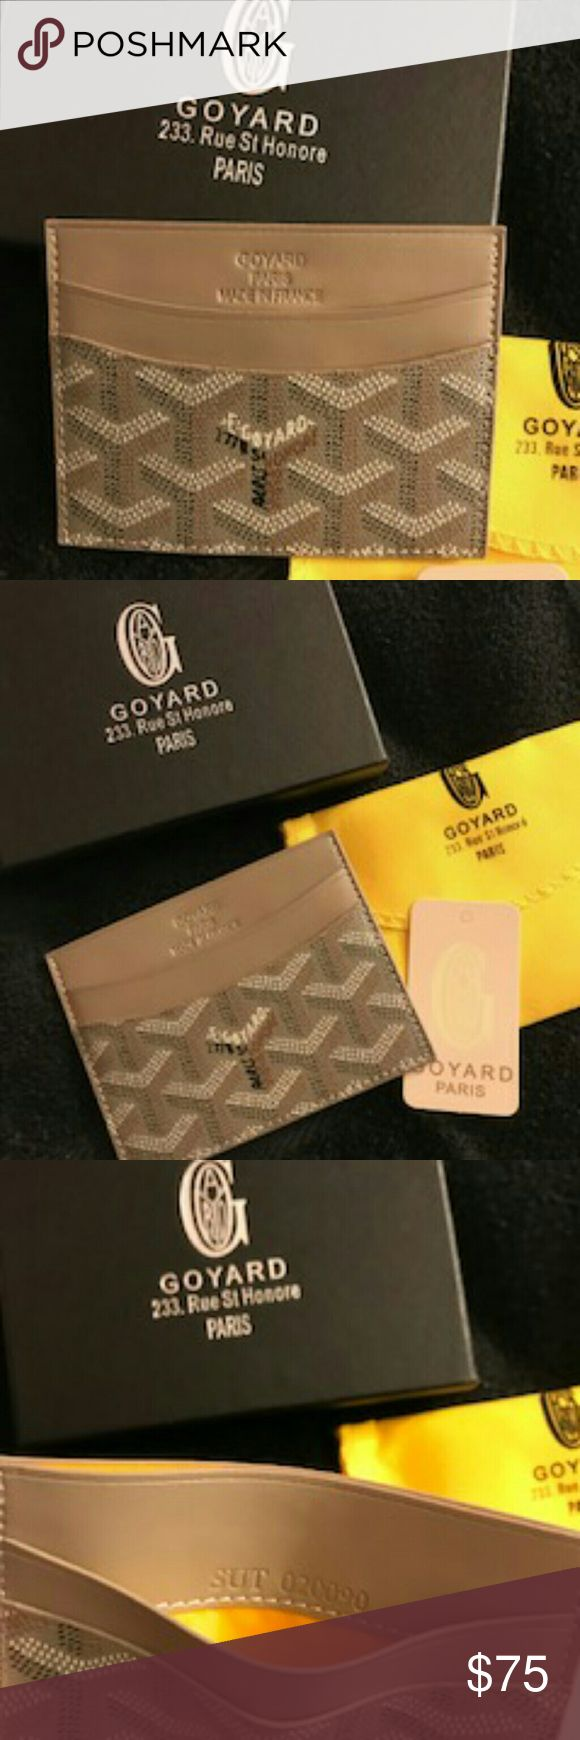 Goyard card holder khaki New never used the box is included as well as dust bag like the original Accessories Key & Card Holders